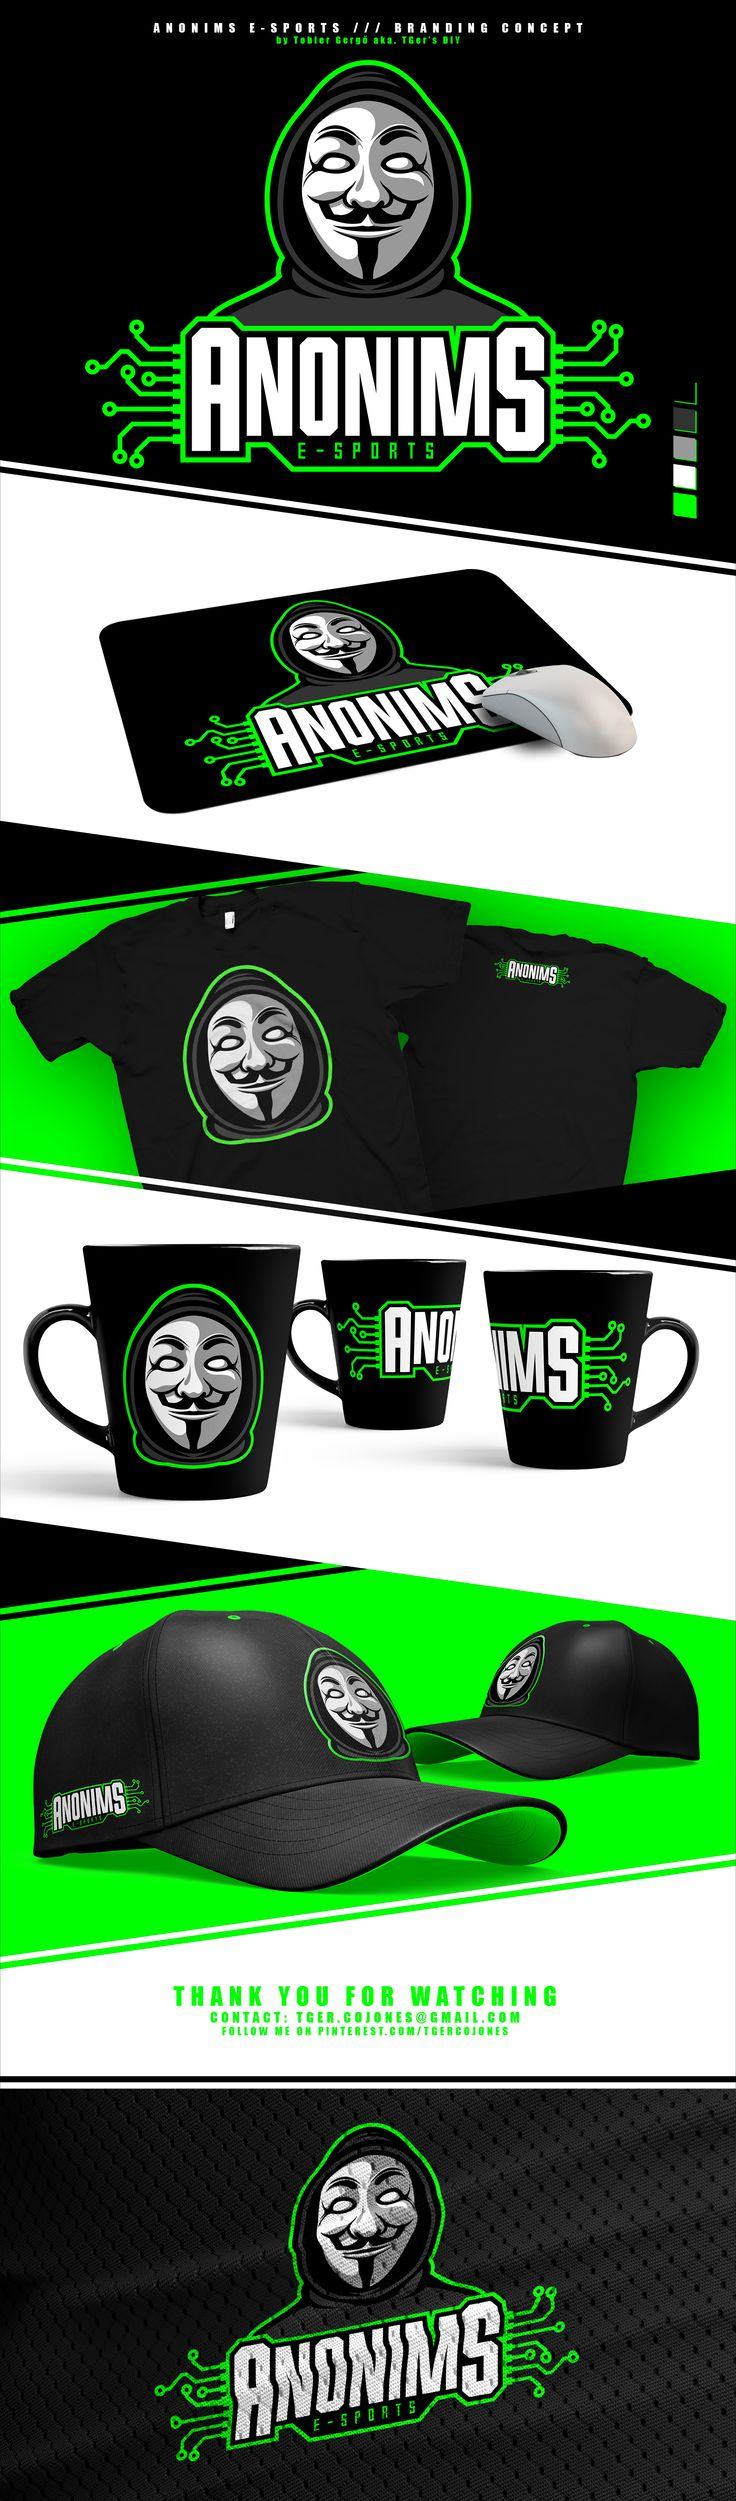 Mascot logo and branding concept for the Anonims E-sports team from Hungary. Made by Tobler Gergő aka TGer's DIY Follow me at Pinterest.com/tgercojones #tgersdiy